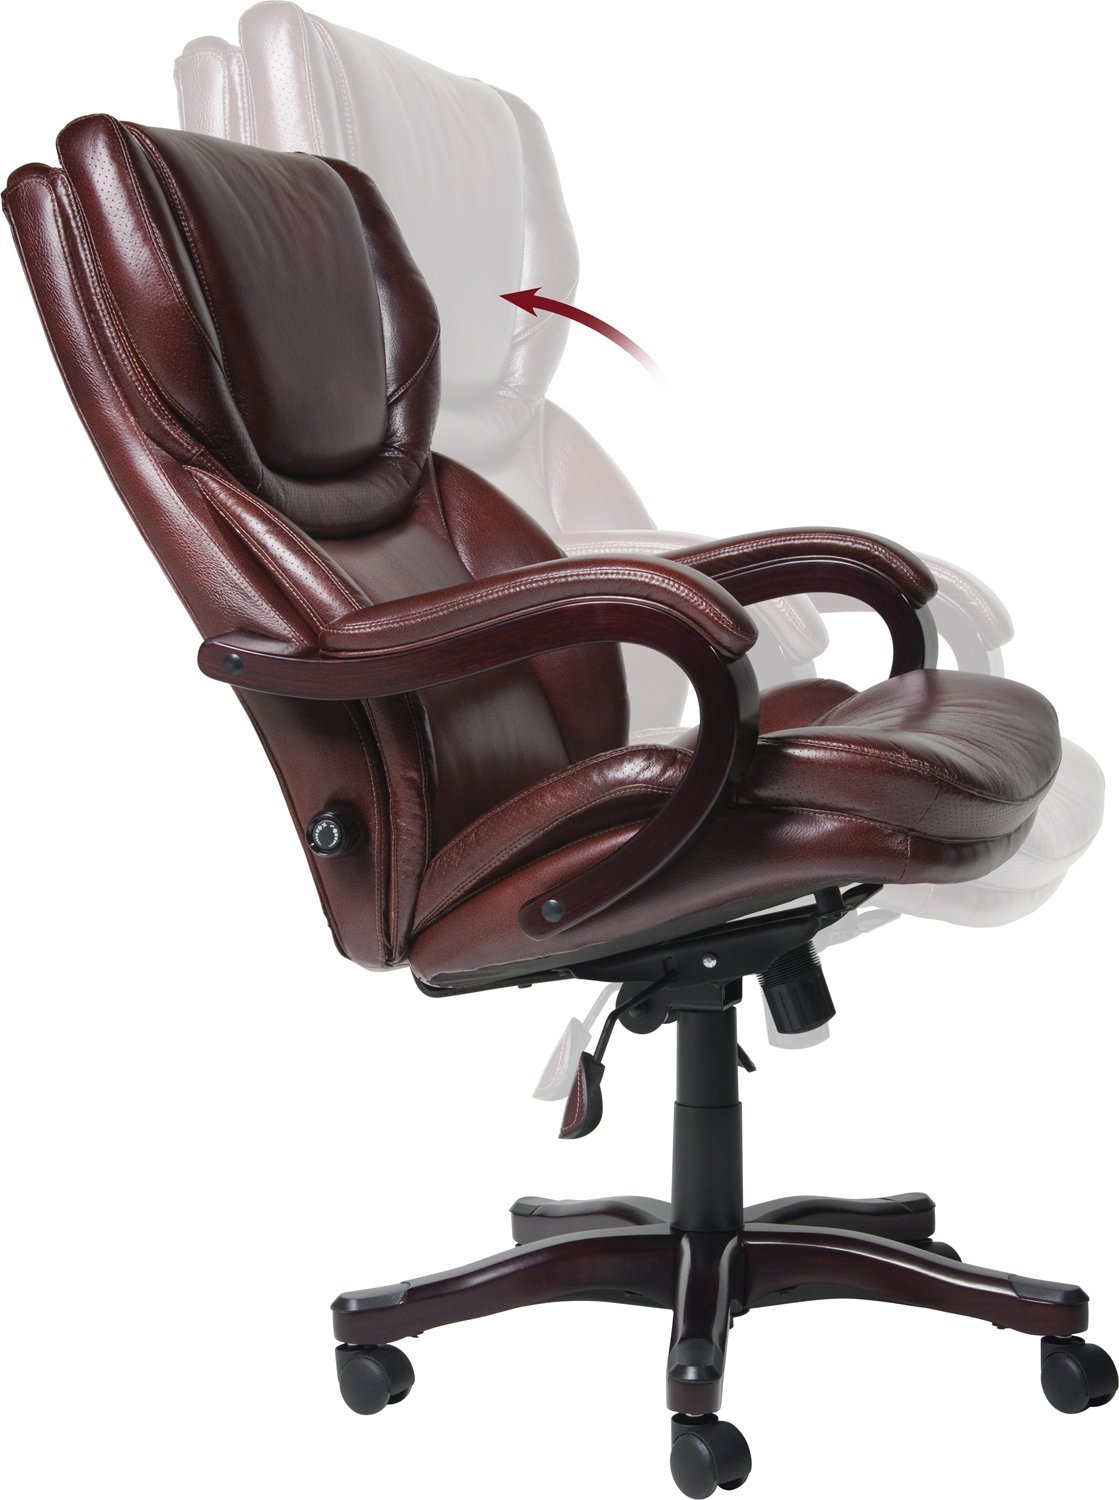 Recliner Office Chair With Footrest Remodel